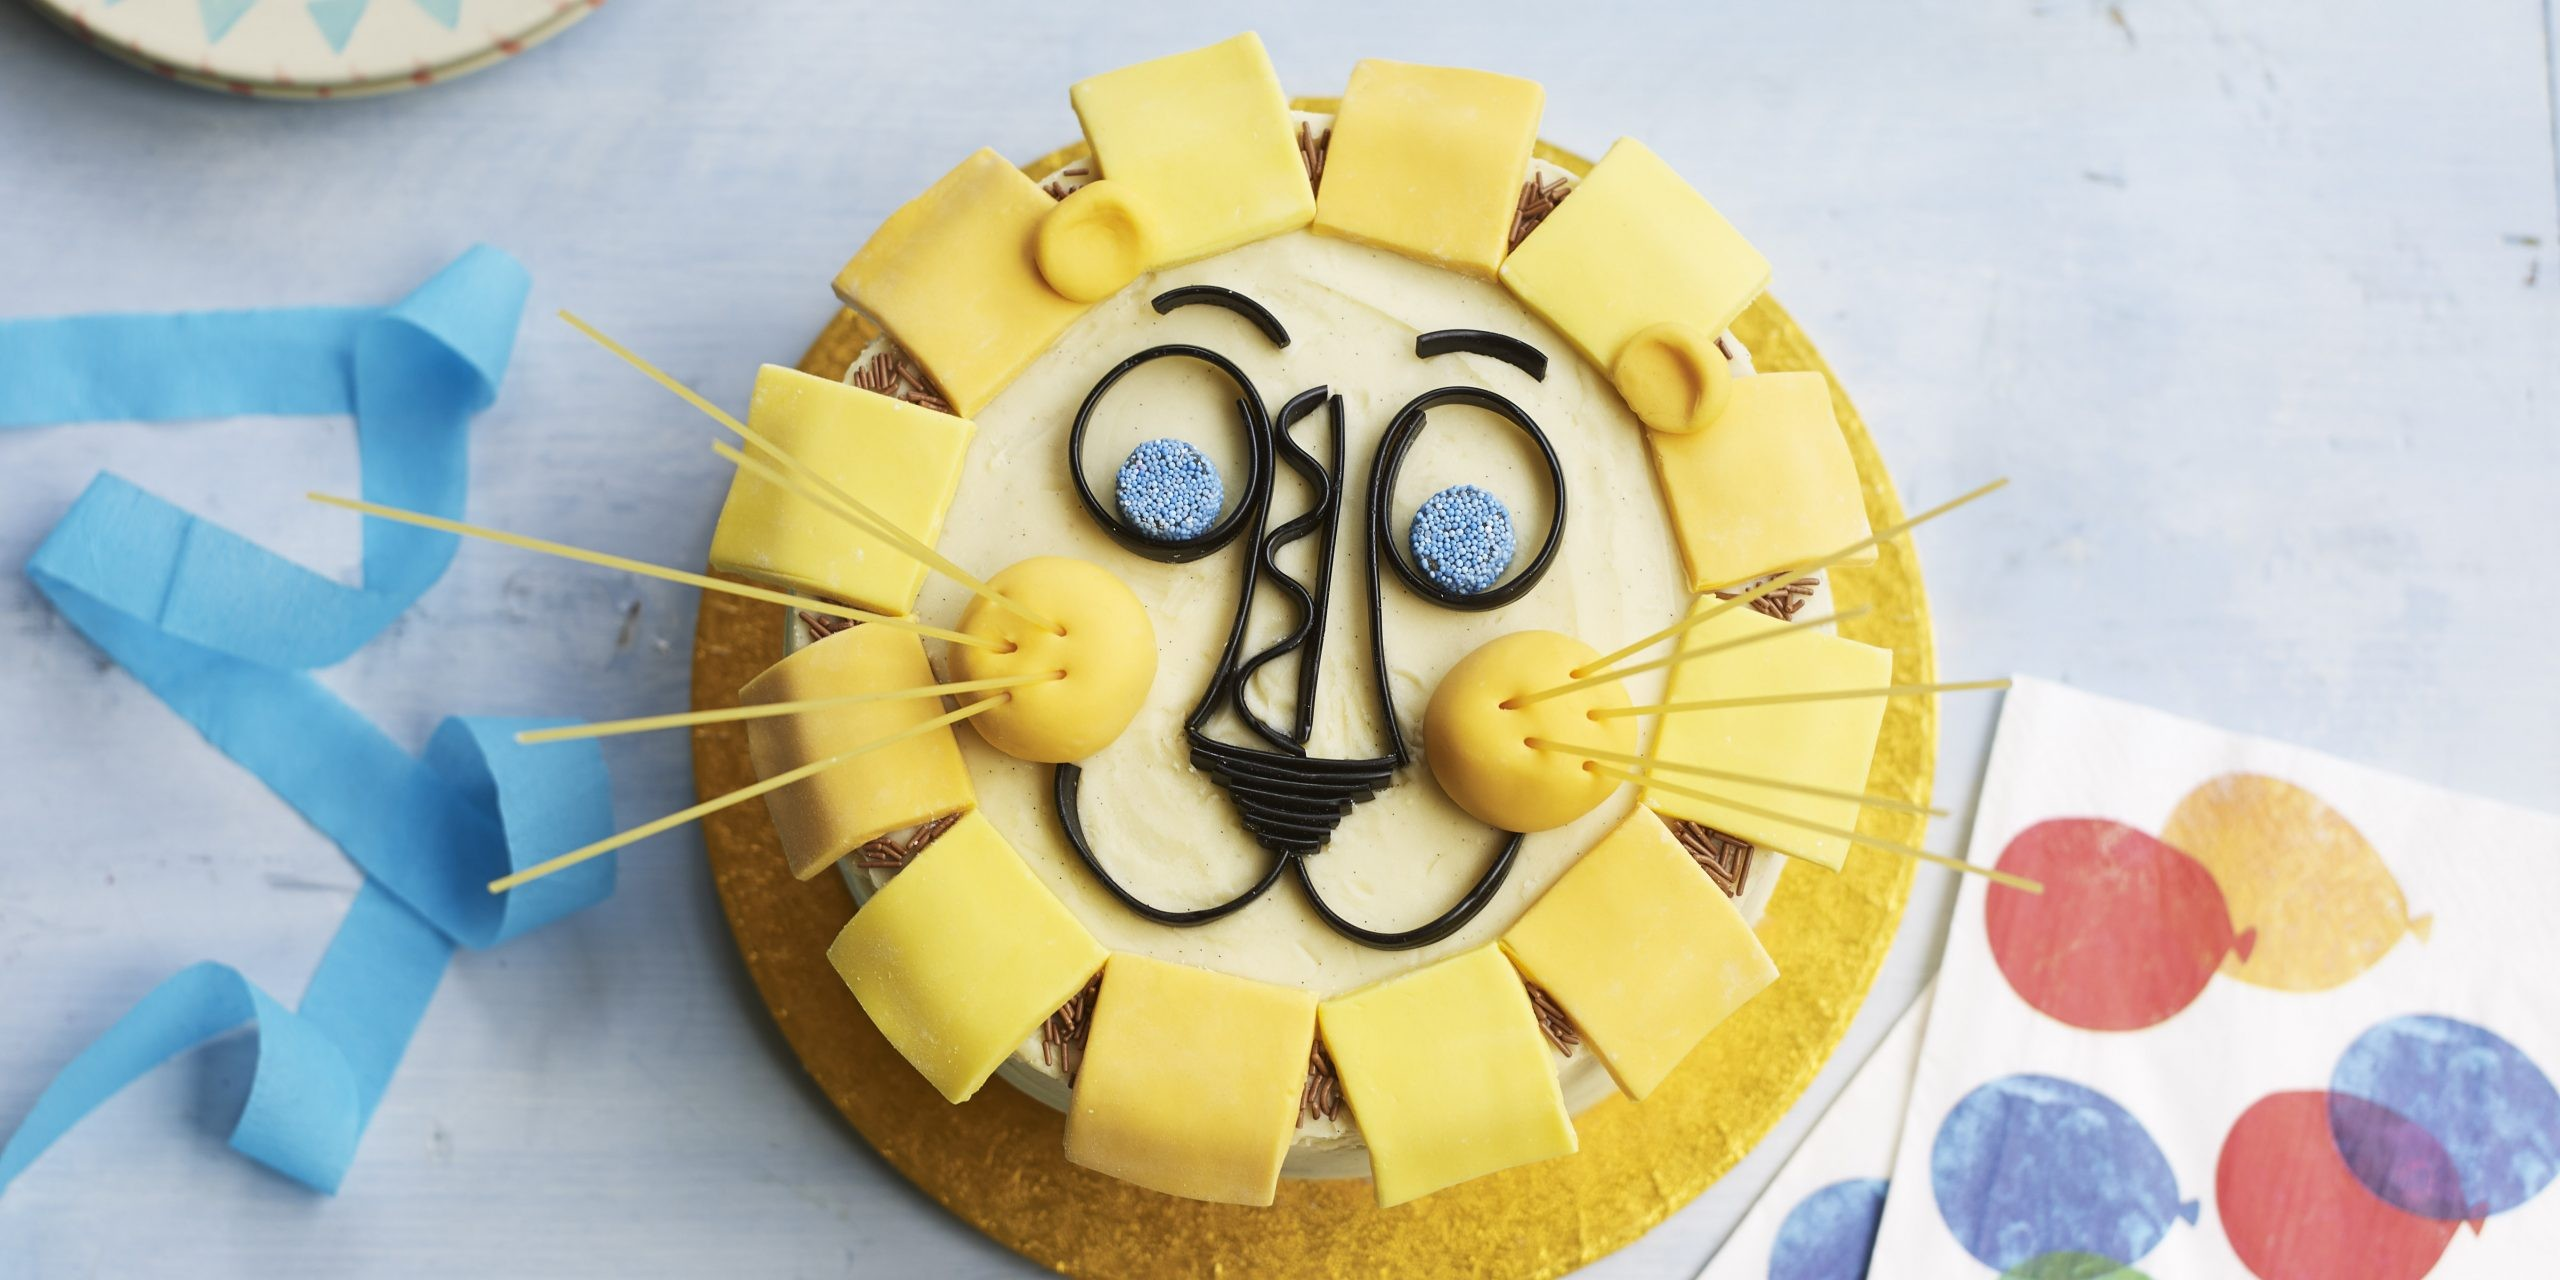 Cake Decoration For Children's Birthday  from images.immediate.co.uk